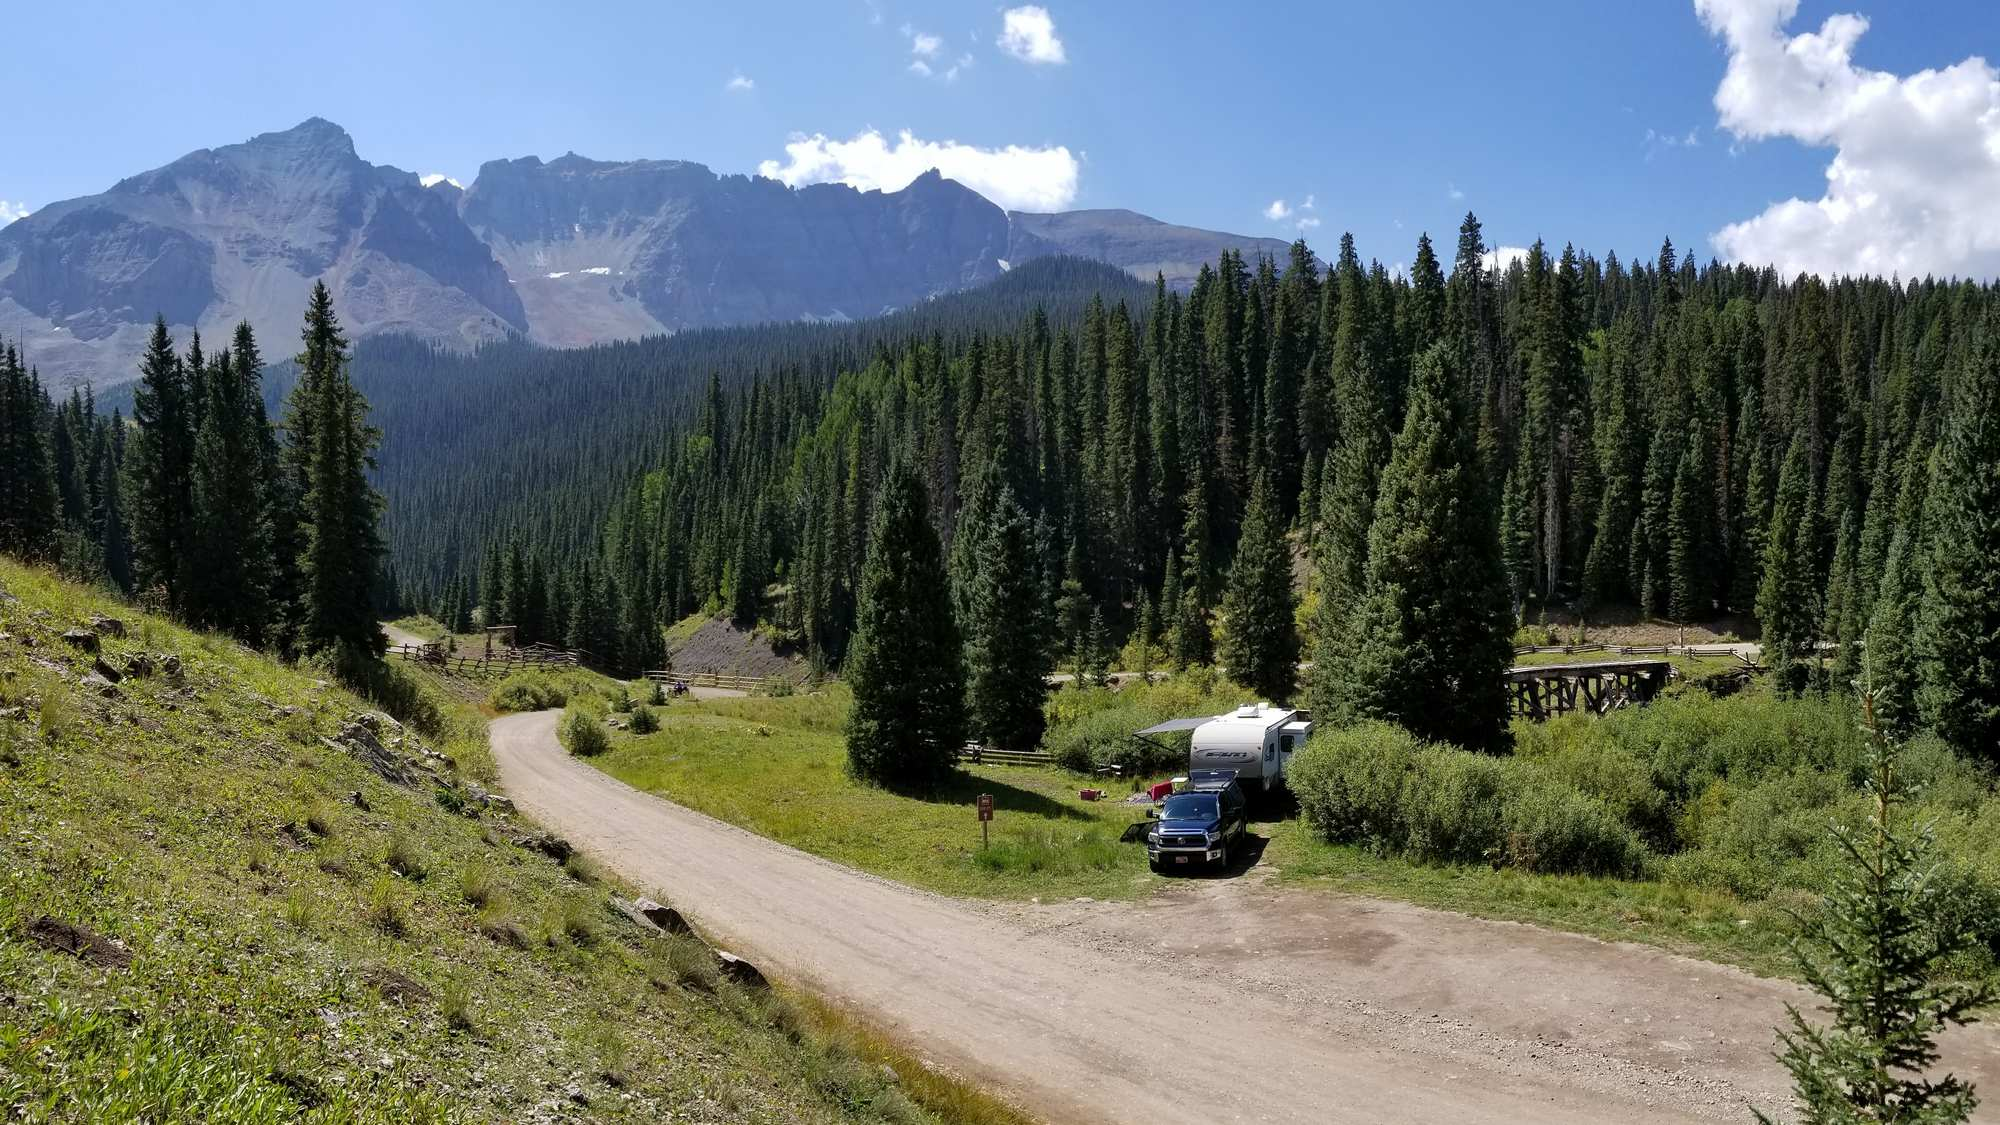 We found this stellar site along North Trout Lake Road near Telluride, Colorado